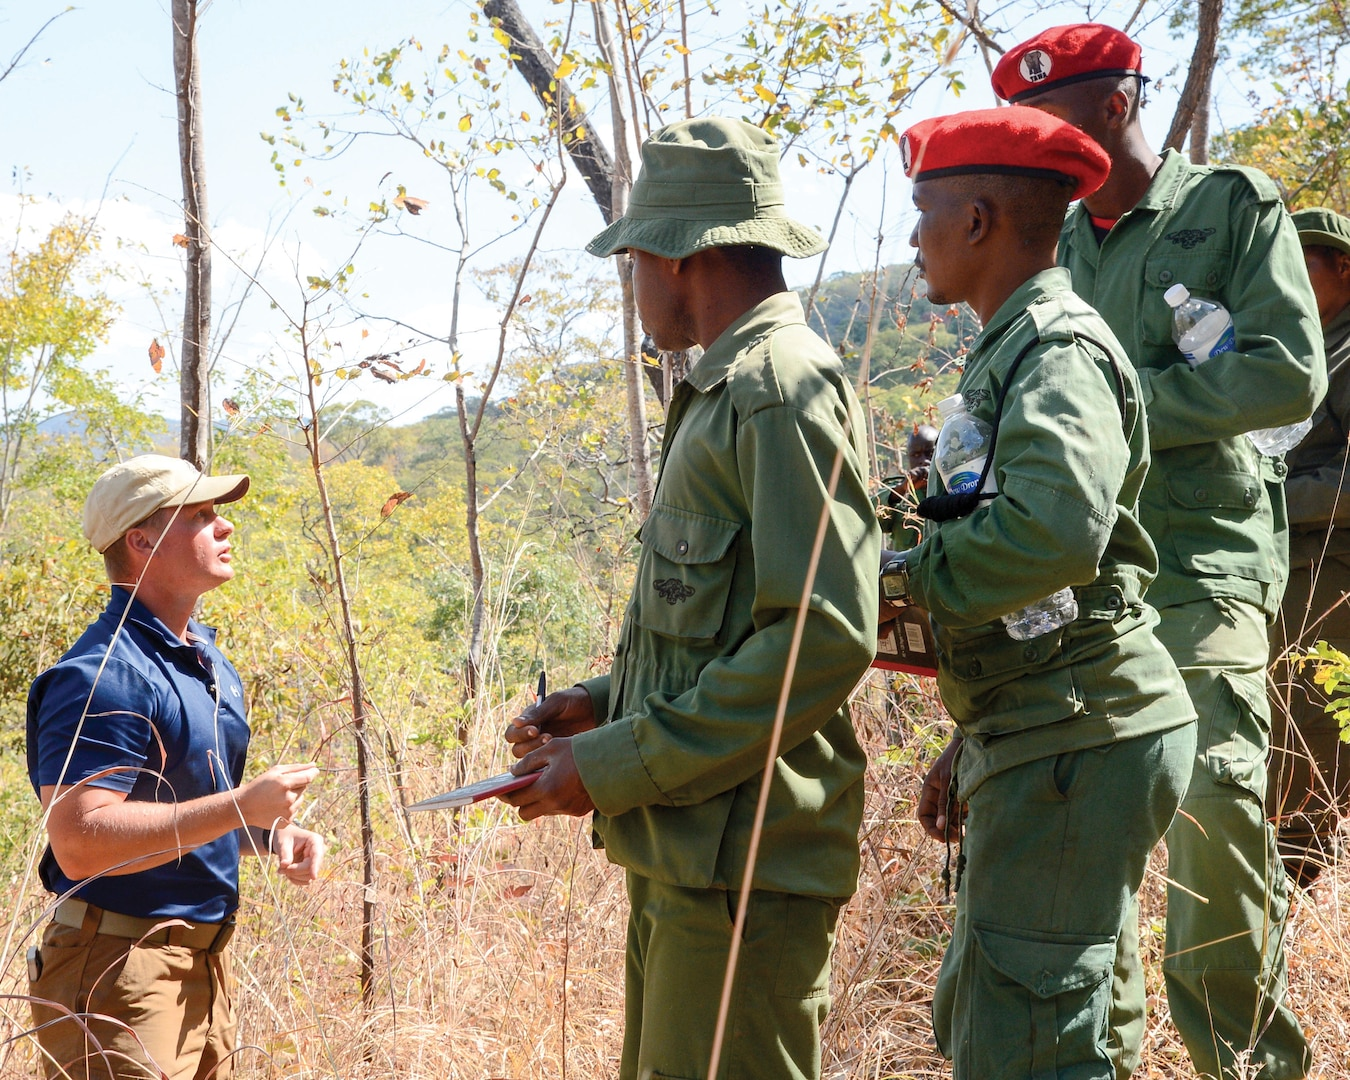 In July, U.S. soldier assigned to the Combined Joint Task Force—Horn of Africa provides guidance for Tanzania Wildlife Management Authority game wardens during a ground surveillance exercise in Tanzania